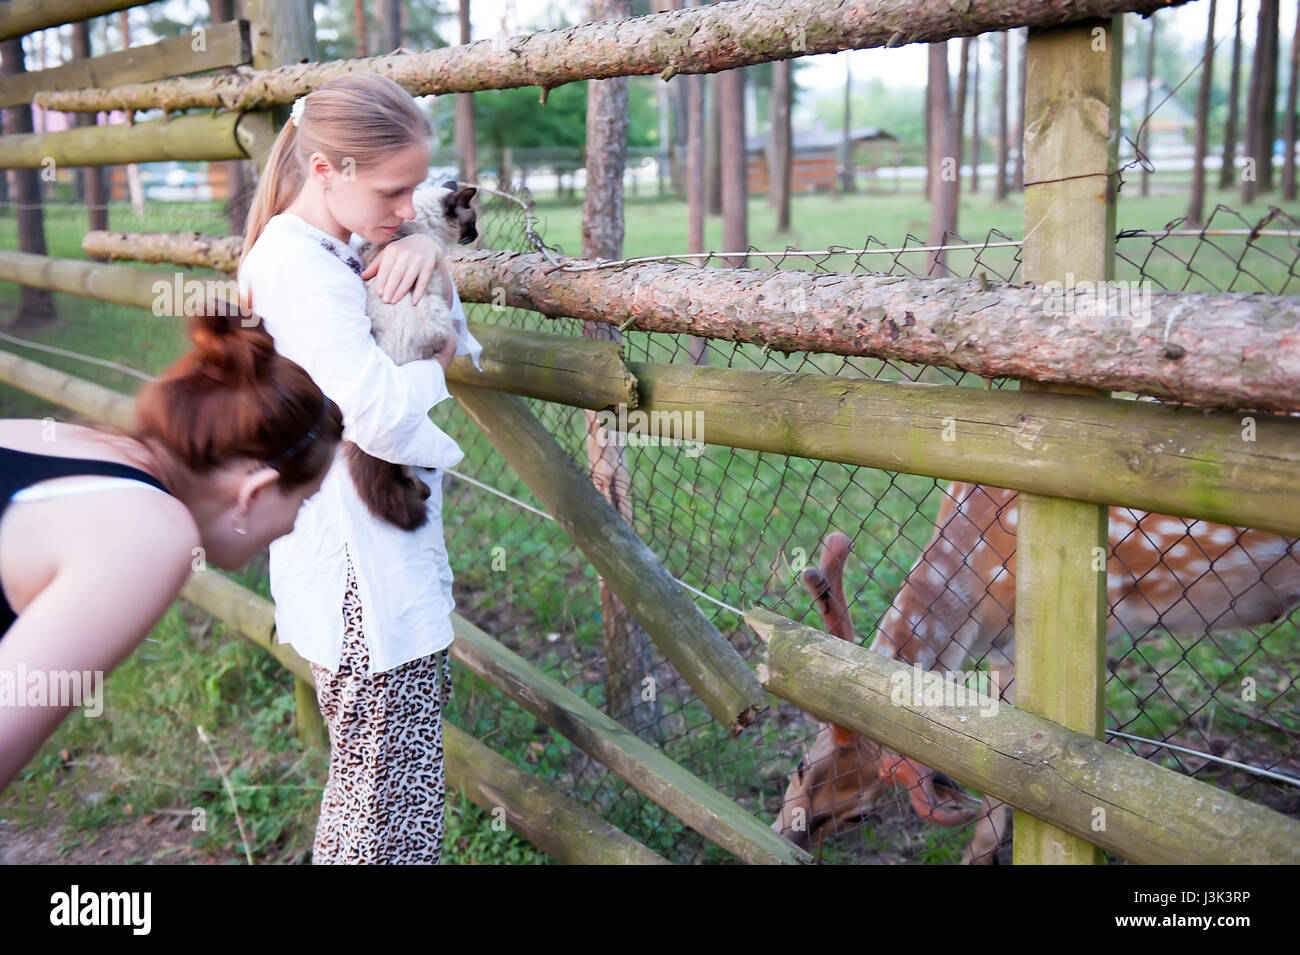 Two girls feed a deer and keep a furry cat on their hands. The concept of love for animals and pets. - Stock Image